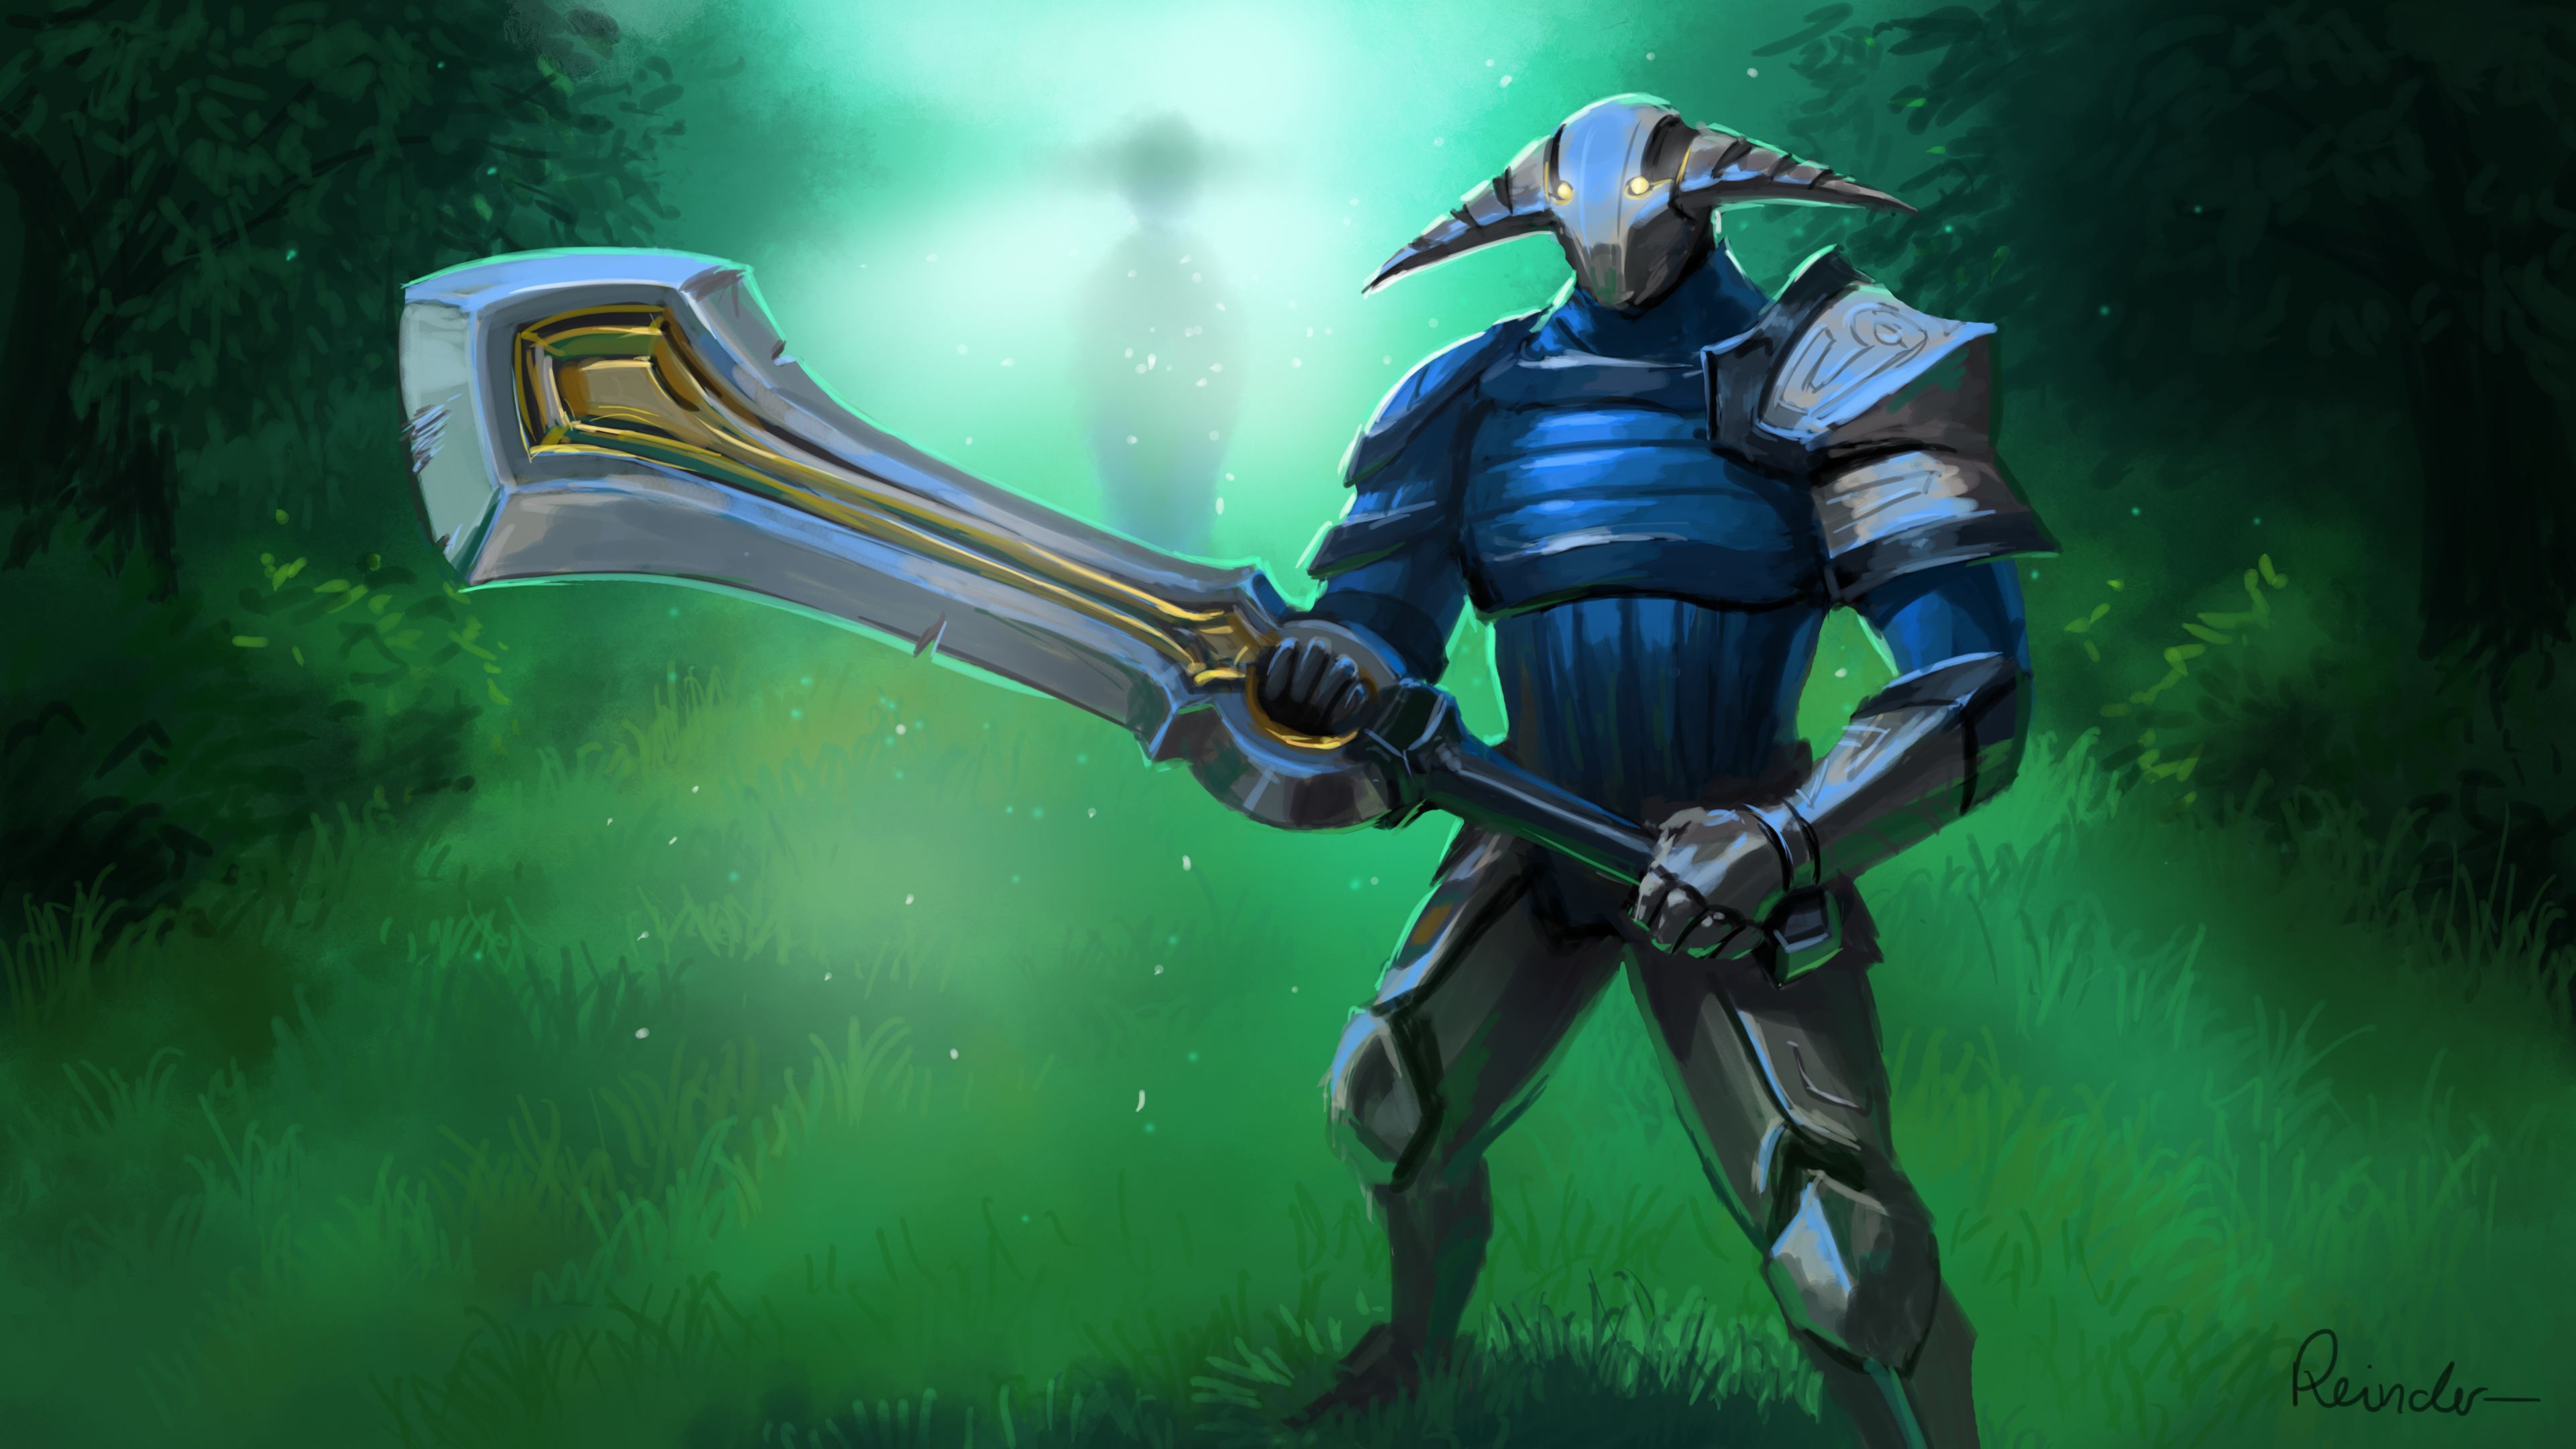 Sven The Rogue Knight by Reinder88 on DeviantArt